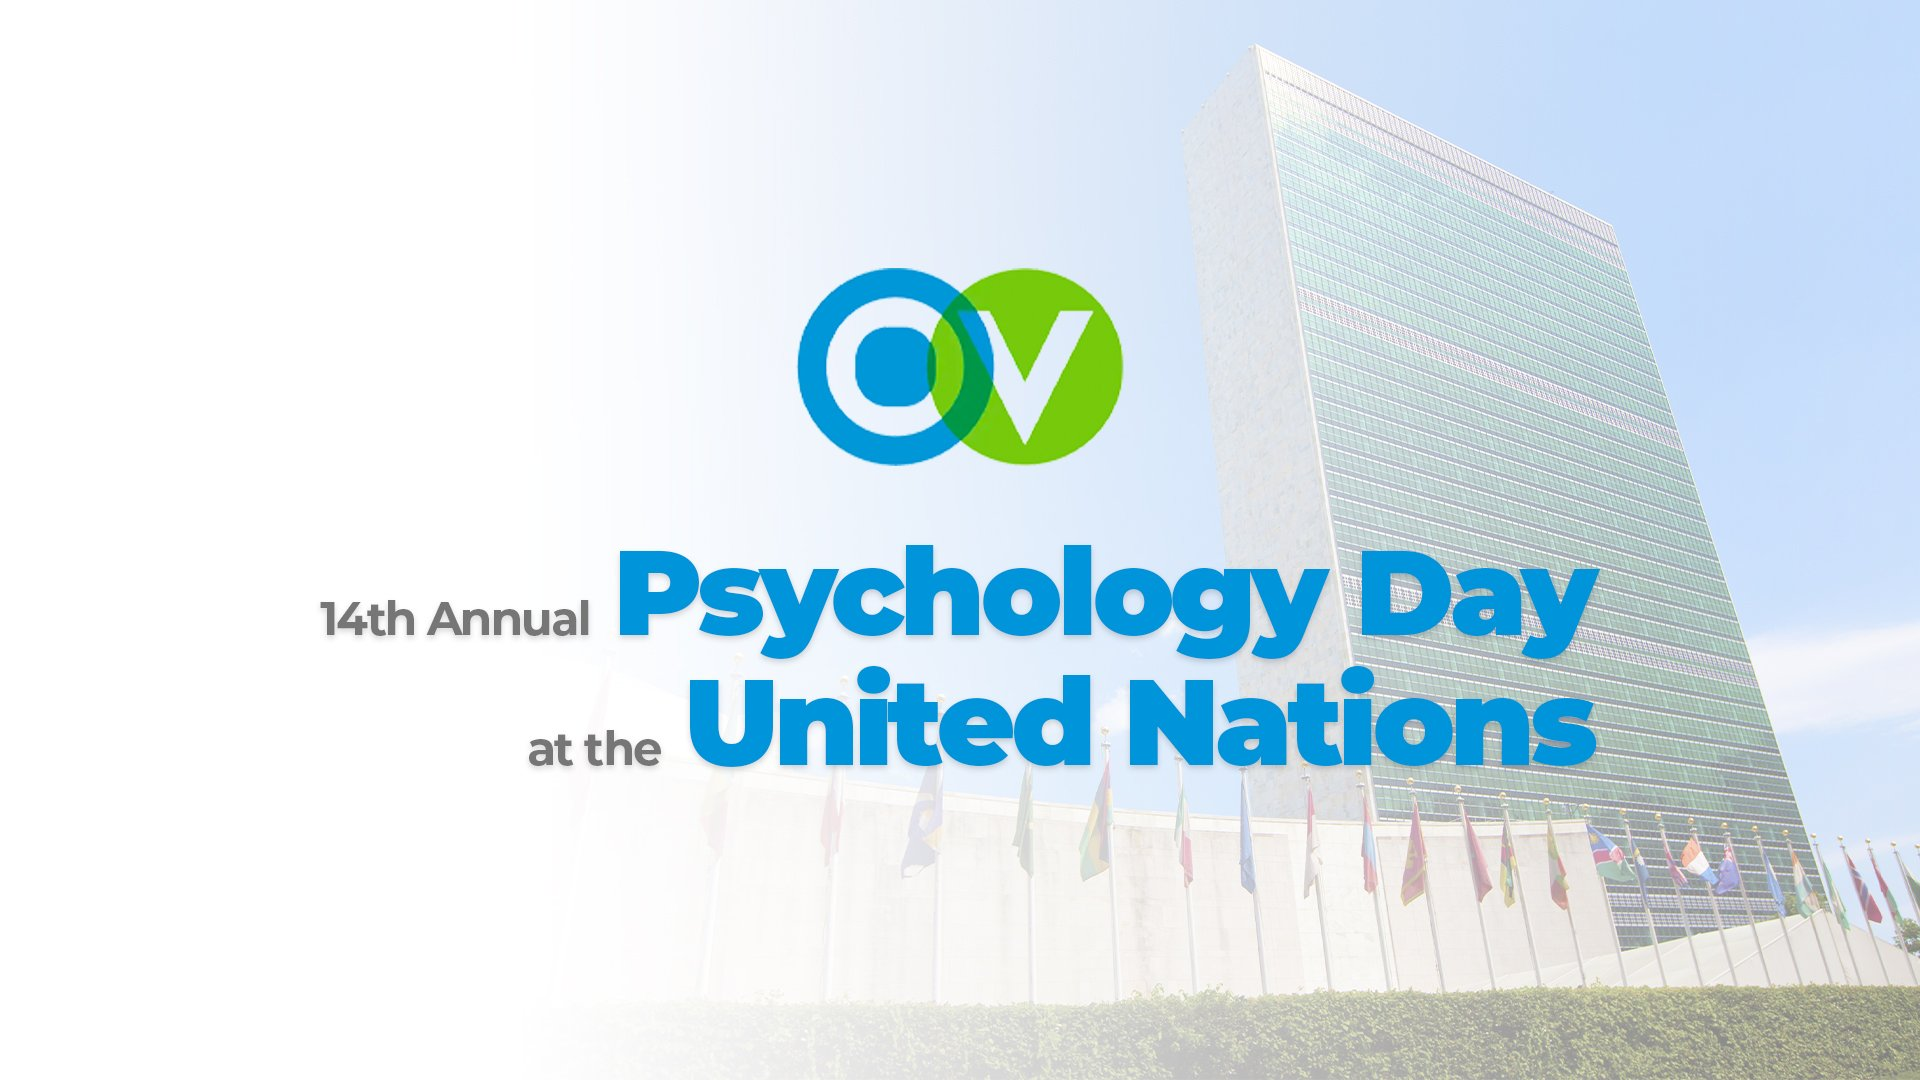 OrgVitality Pleased to Co-Sponsor 14th Annual Psychology Day at the United Nations